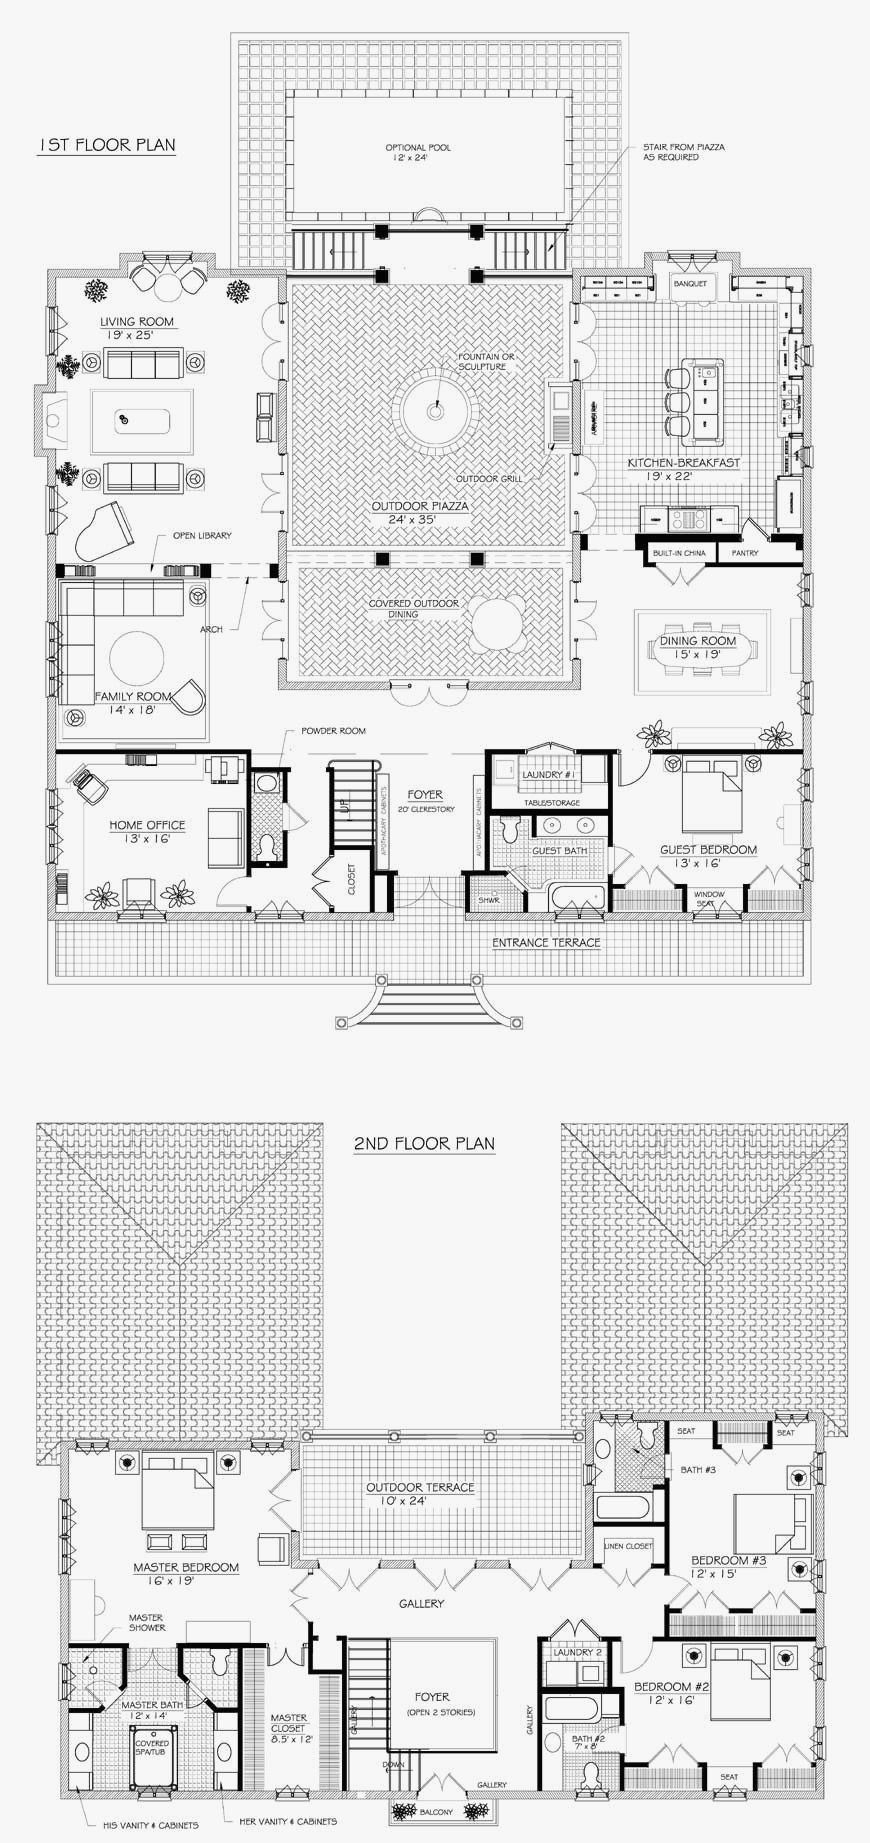 U Shaped House Plans With Courtyard In Middle Best Of French House Plans On Pinterest French House Plans Courtyard House Plans Farmhouse Floor Plans